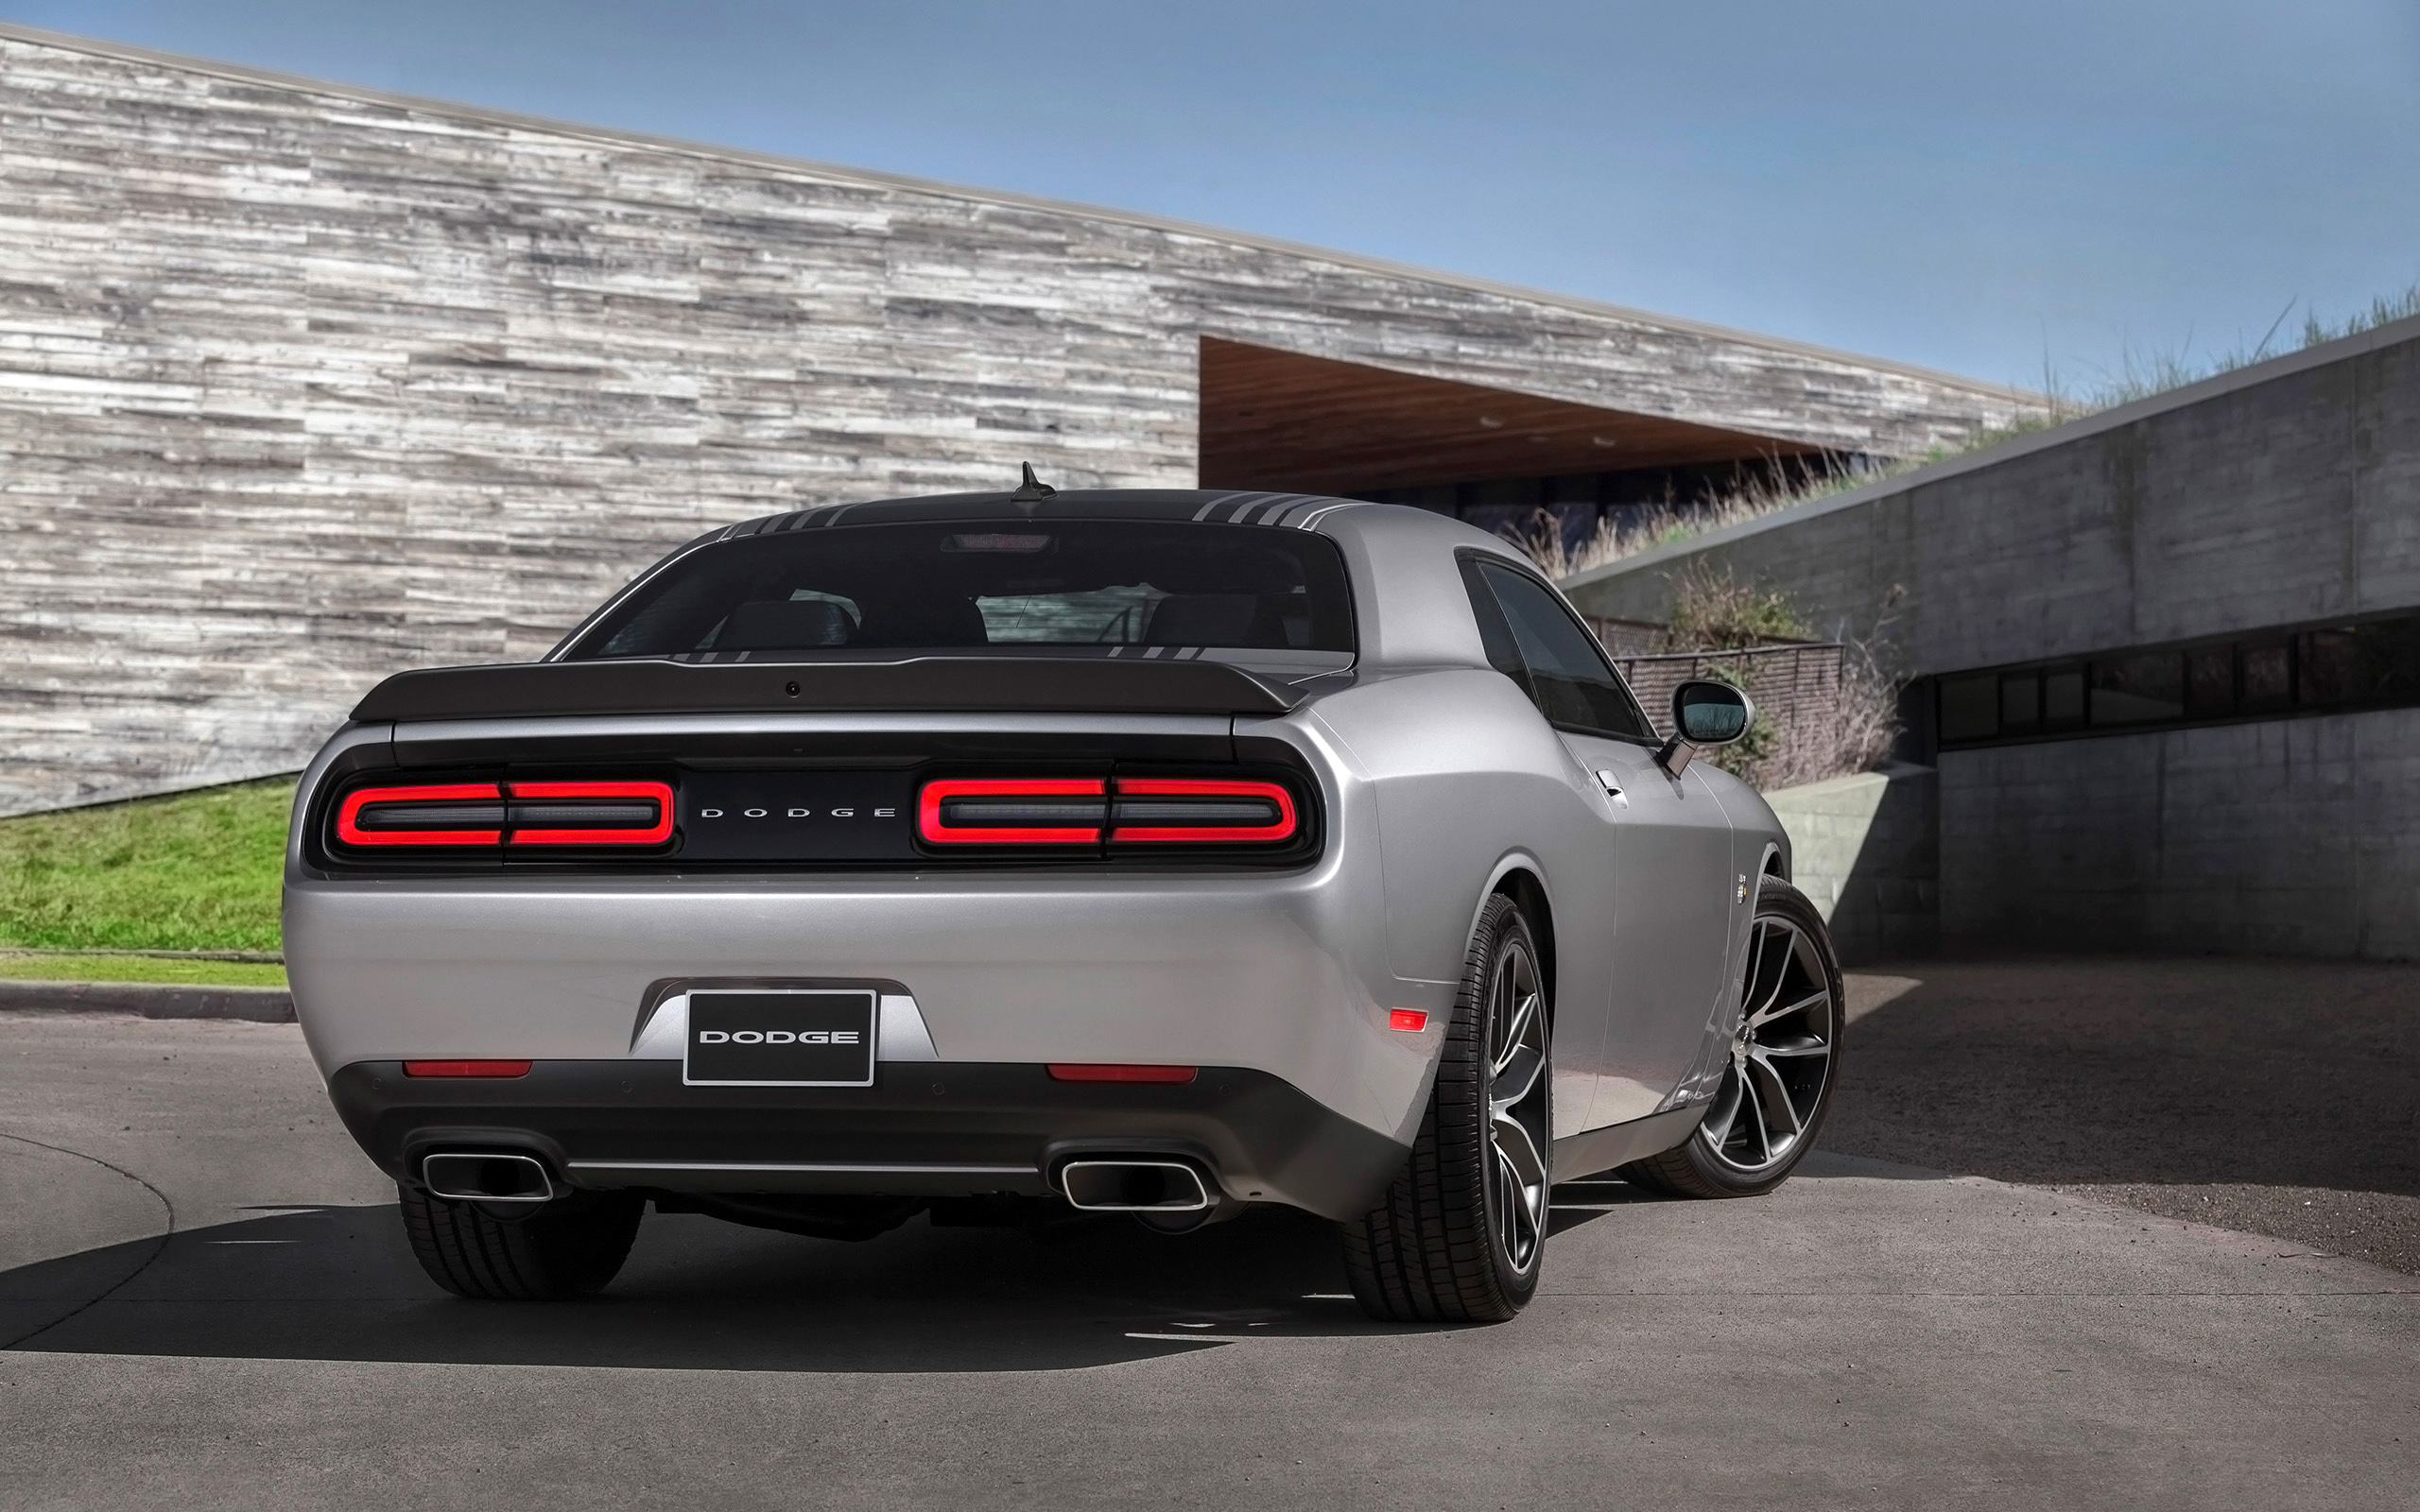 2015 Dodge Challenger Shaker 2 Wallpaper HD Car Wallpapers 2560x1600